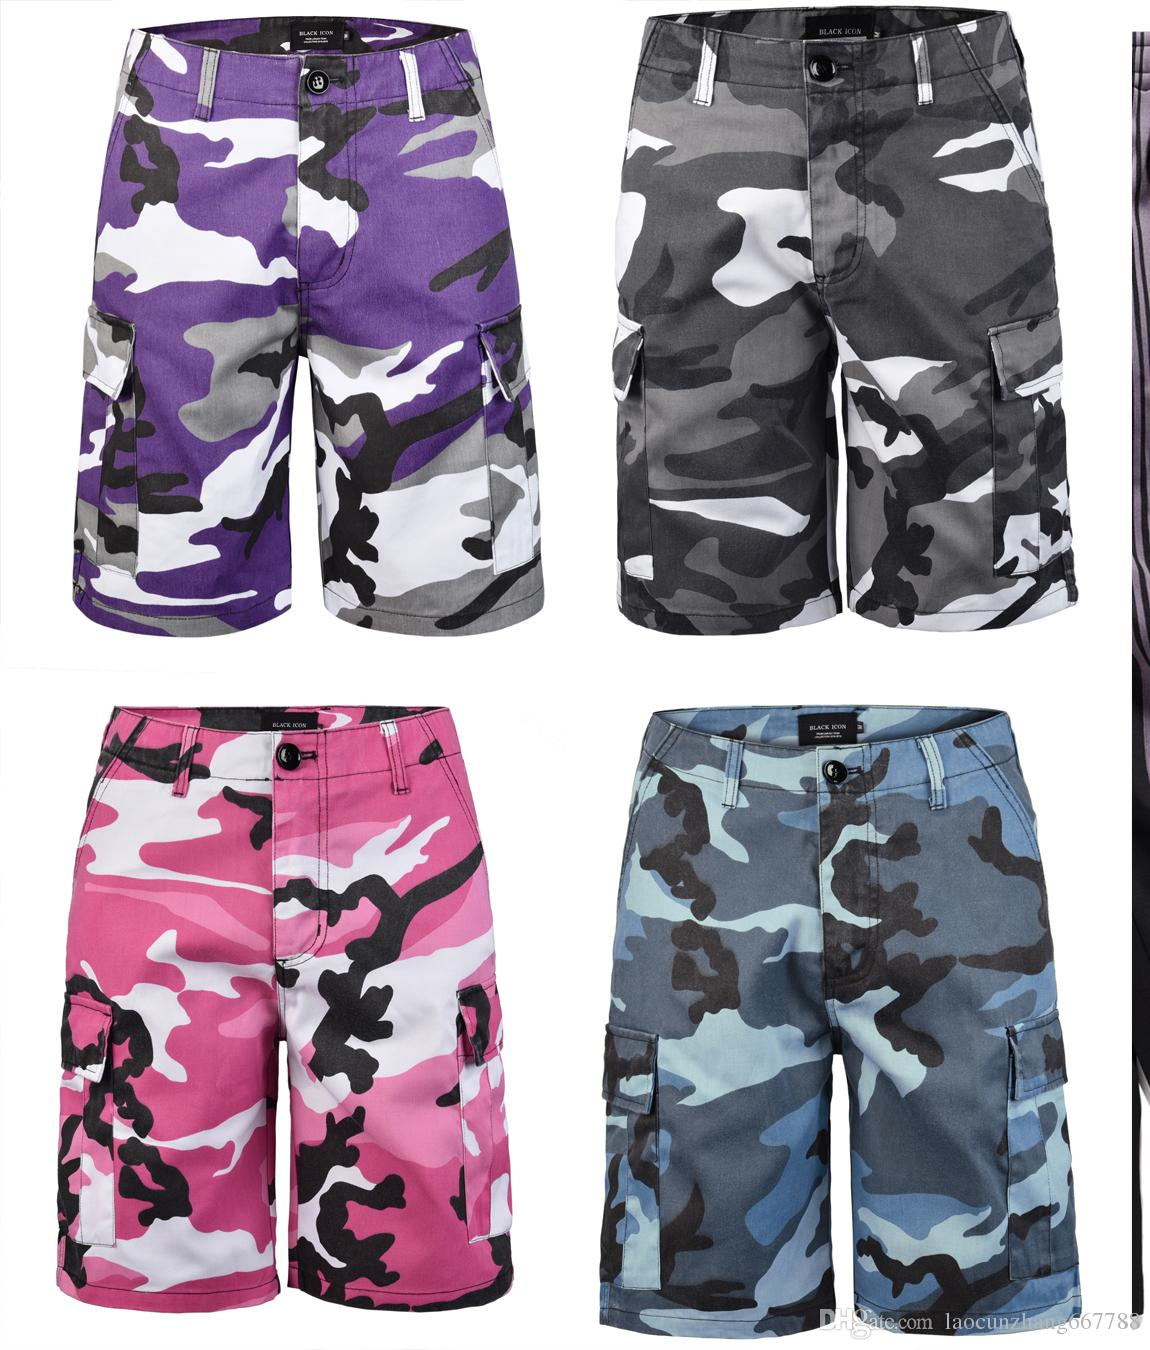 d758473c95 2019 Size M XXXXL Color Camo Cargo Pants Shorts 2018 Mens Fashion Baggy  Tactical Trouser Hip Hop Casual Cotton Multi Pockets Shorts Streetwear From  ...